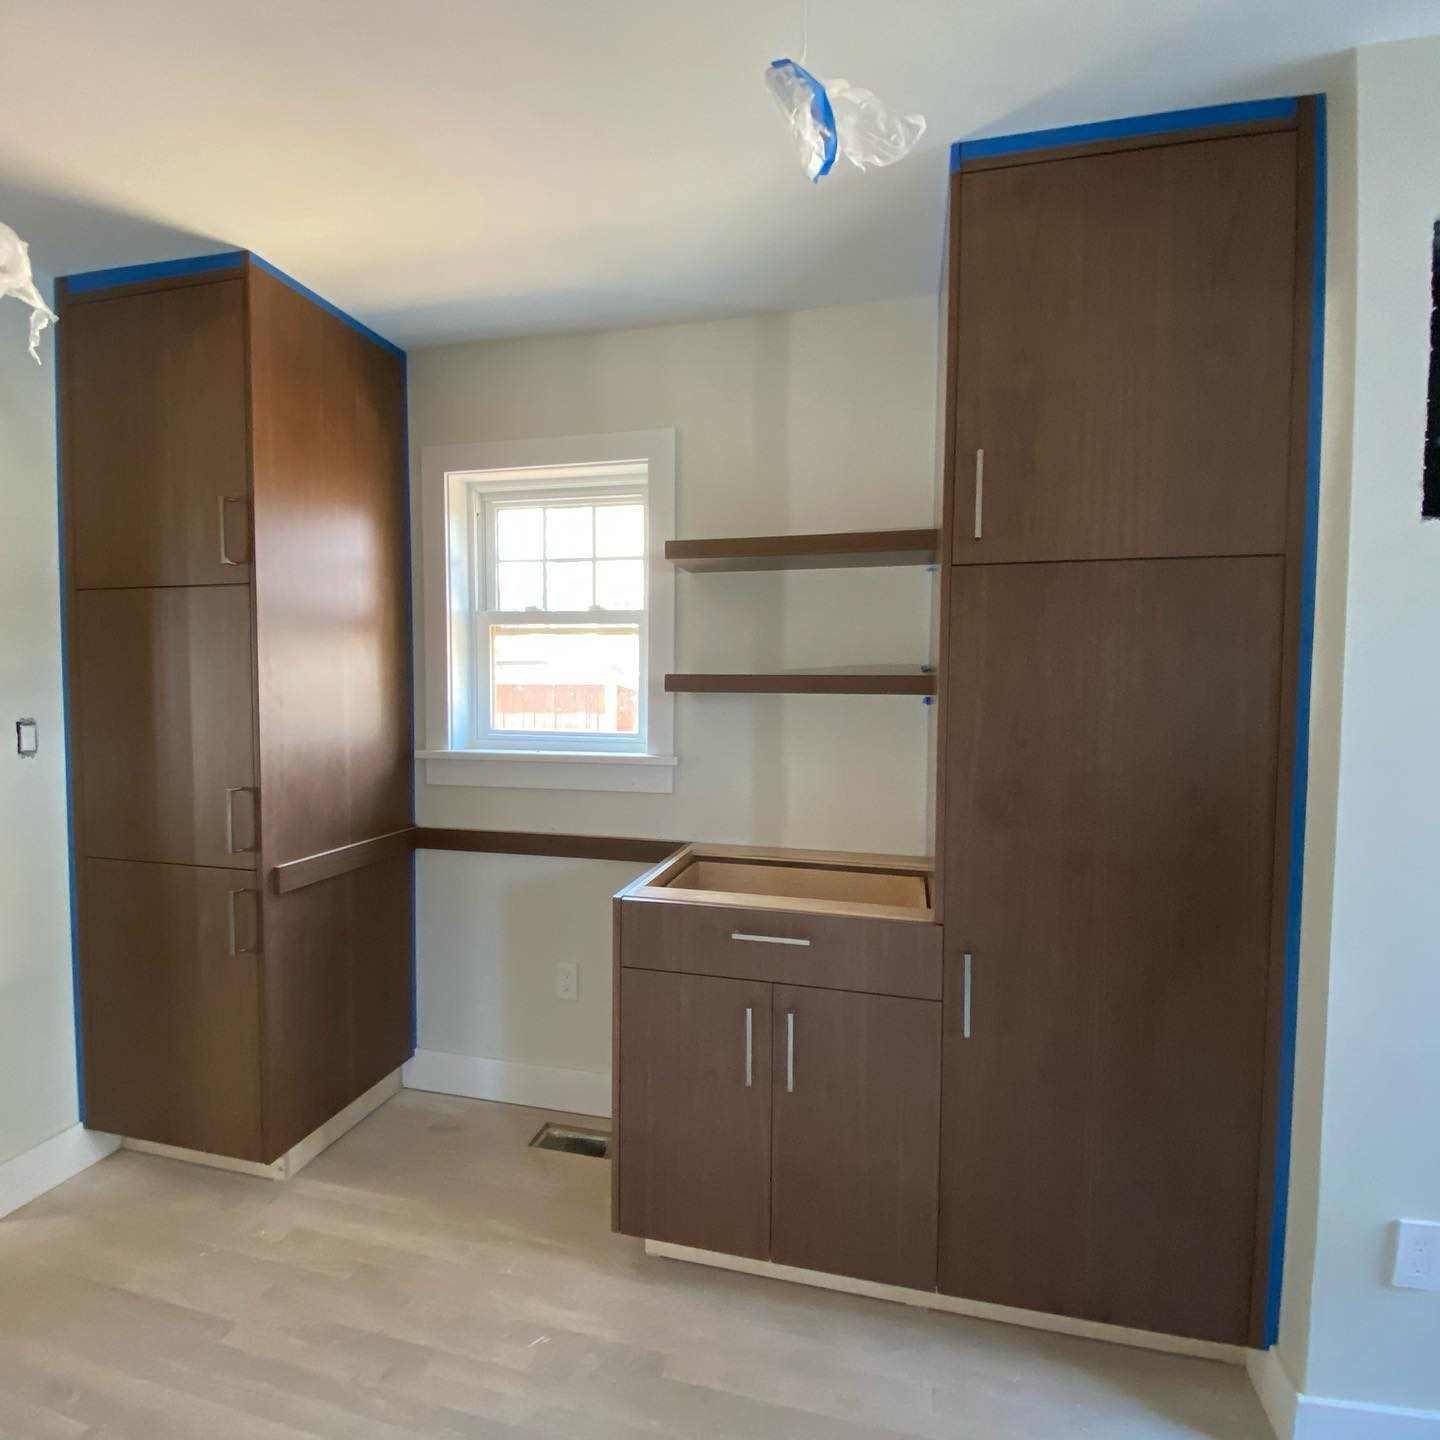 Walnut custom modern cabinets. Designed, built and installed by